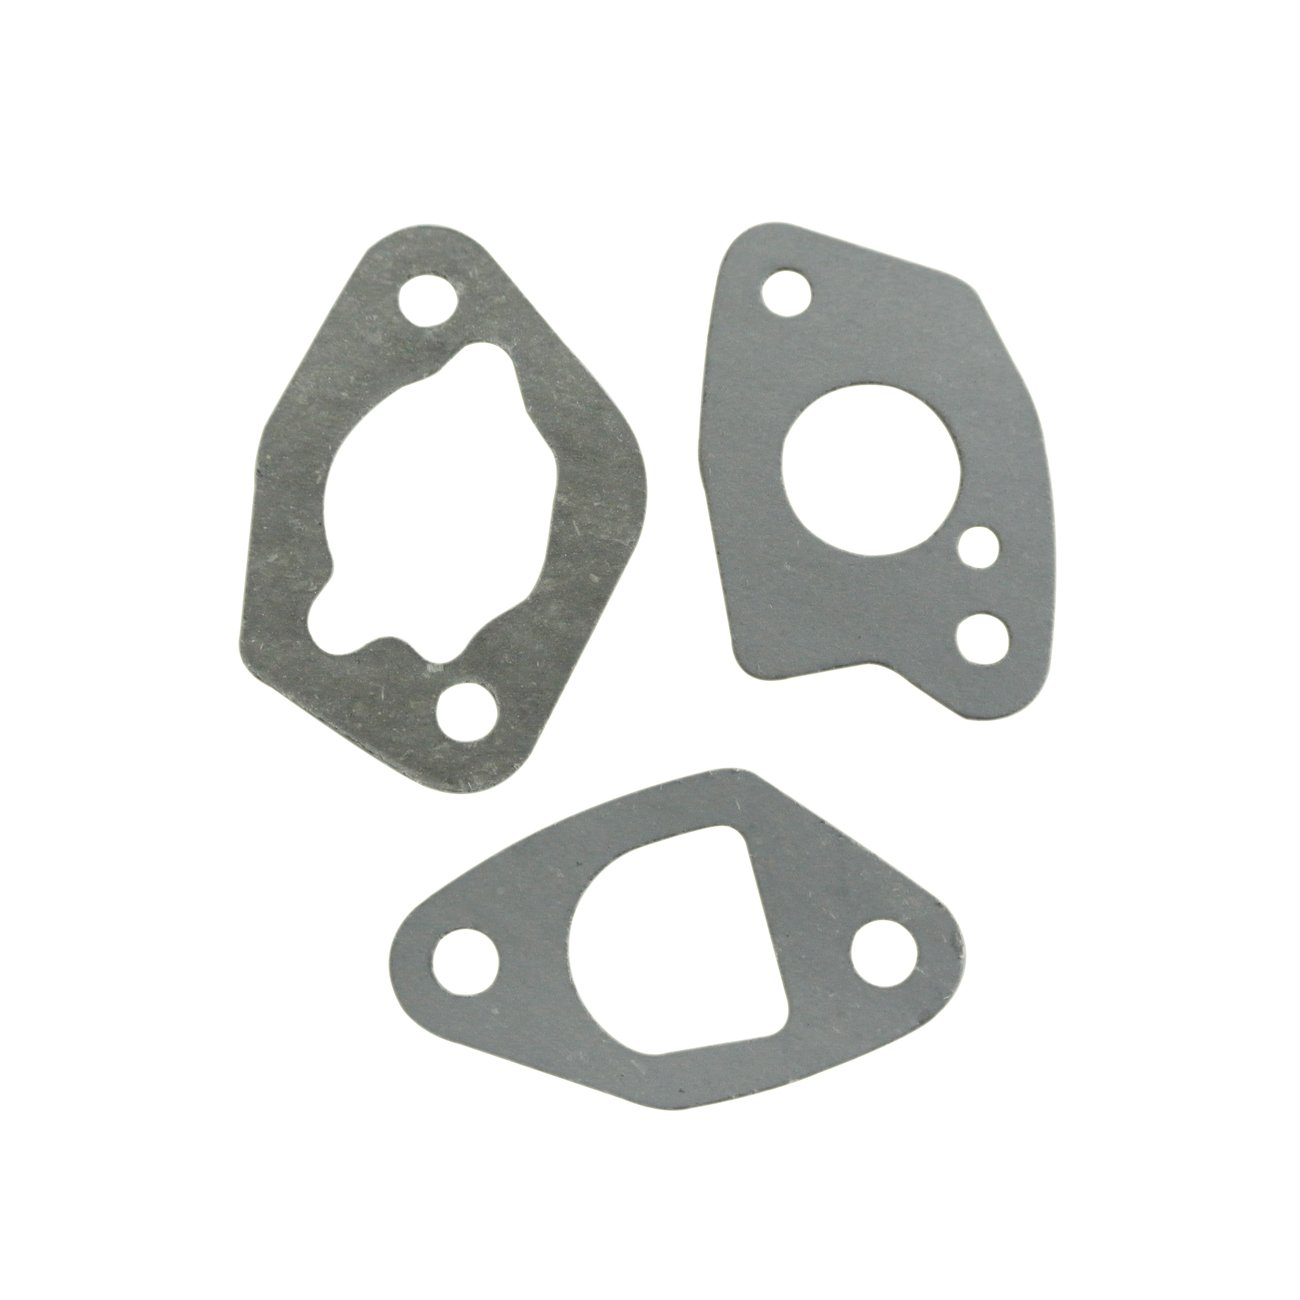 JRL Gaskets For Honda GX160 5.5HP GX200 6.5hp 16100-ZH8-W61 Carb New